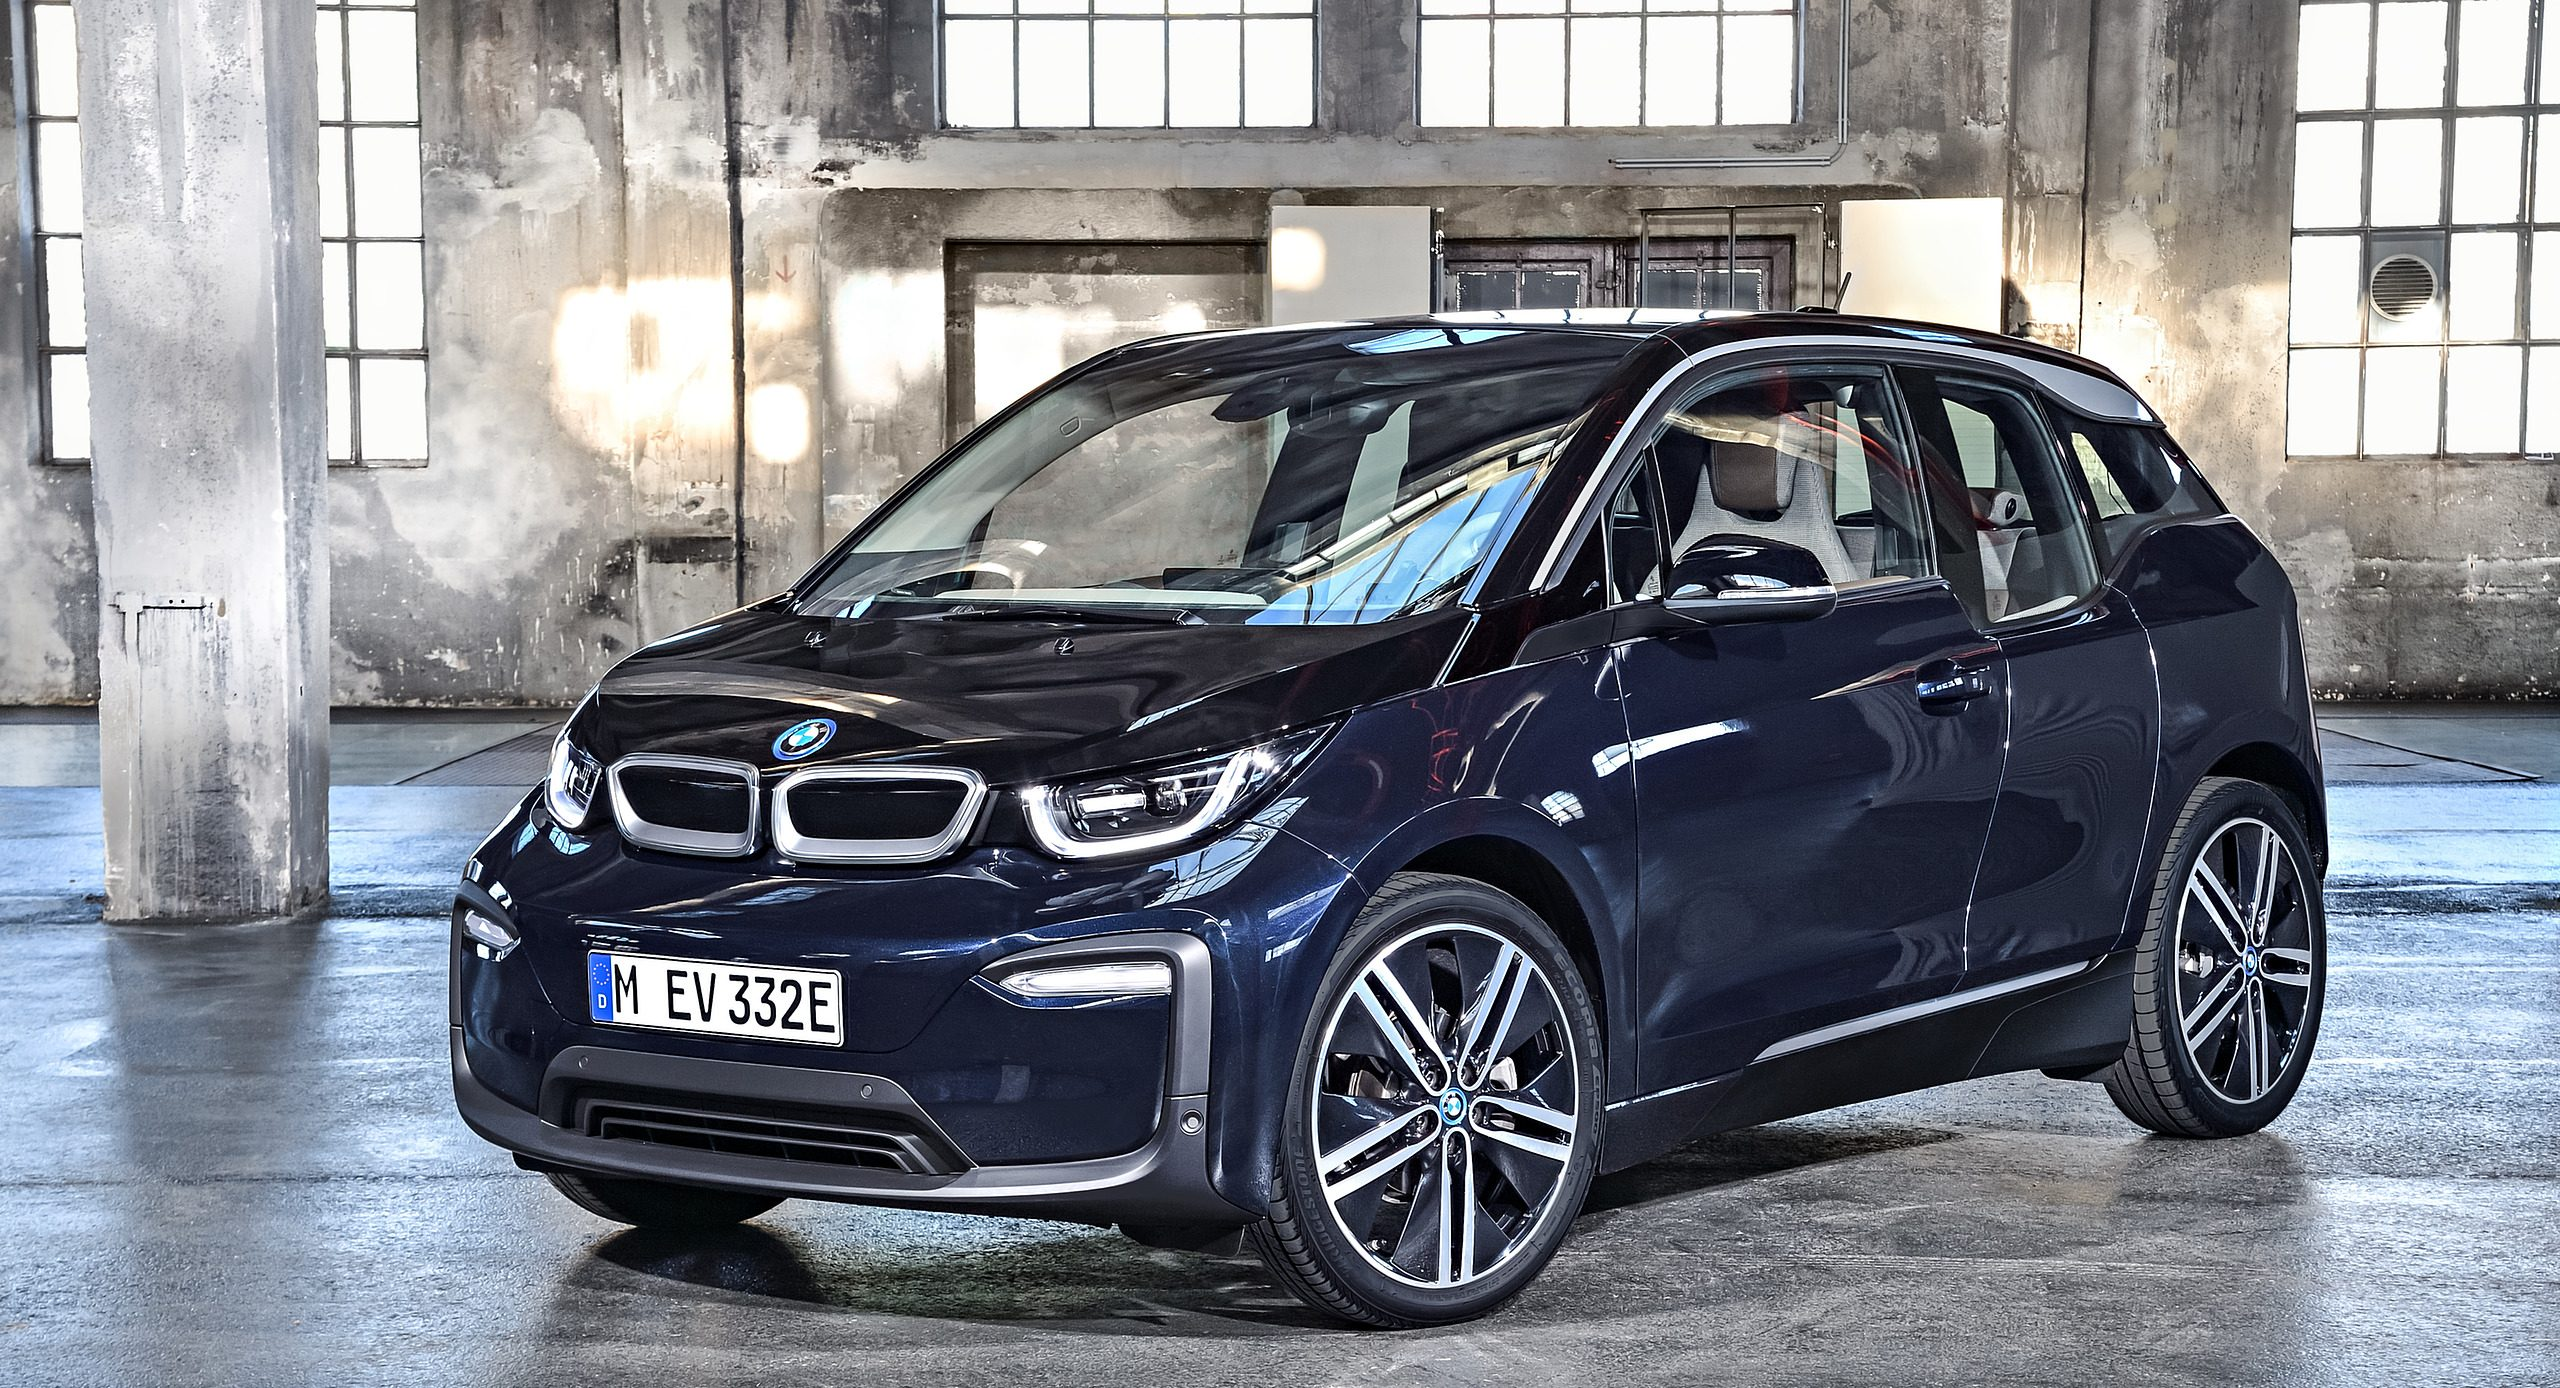 2018 BMW i3 Wallpapers   SuperCars.net